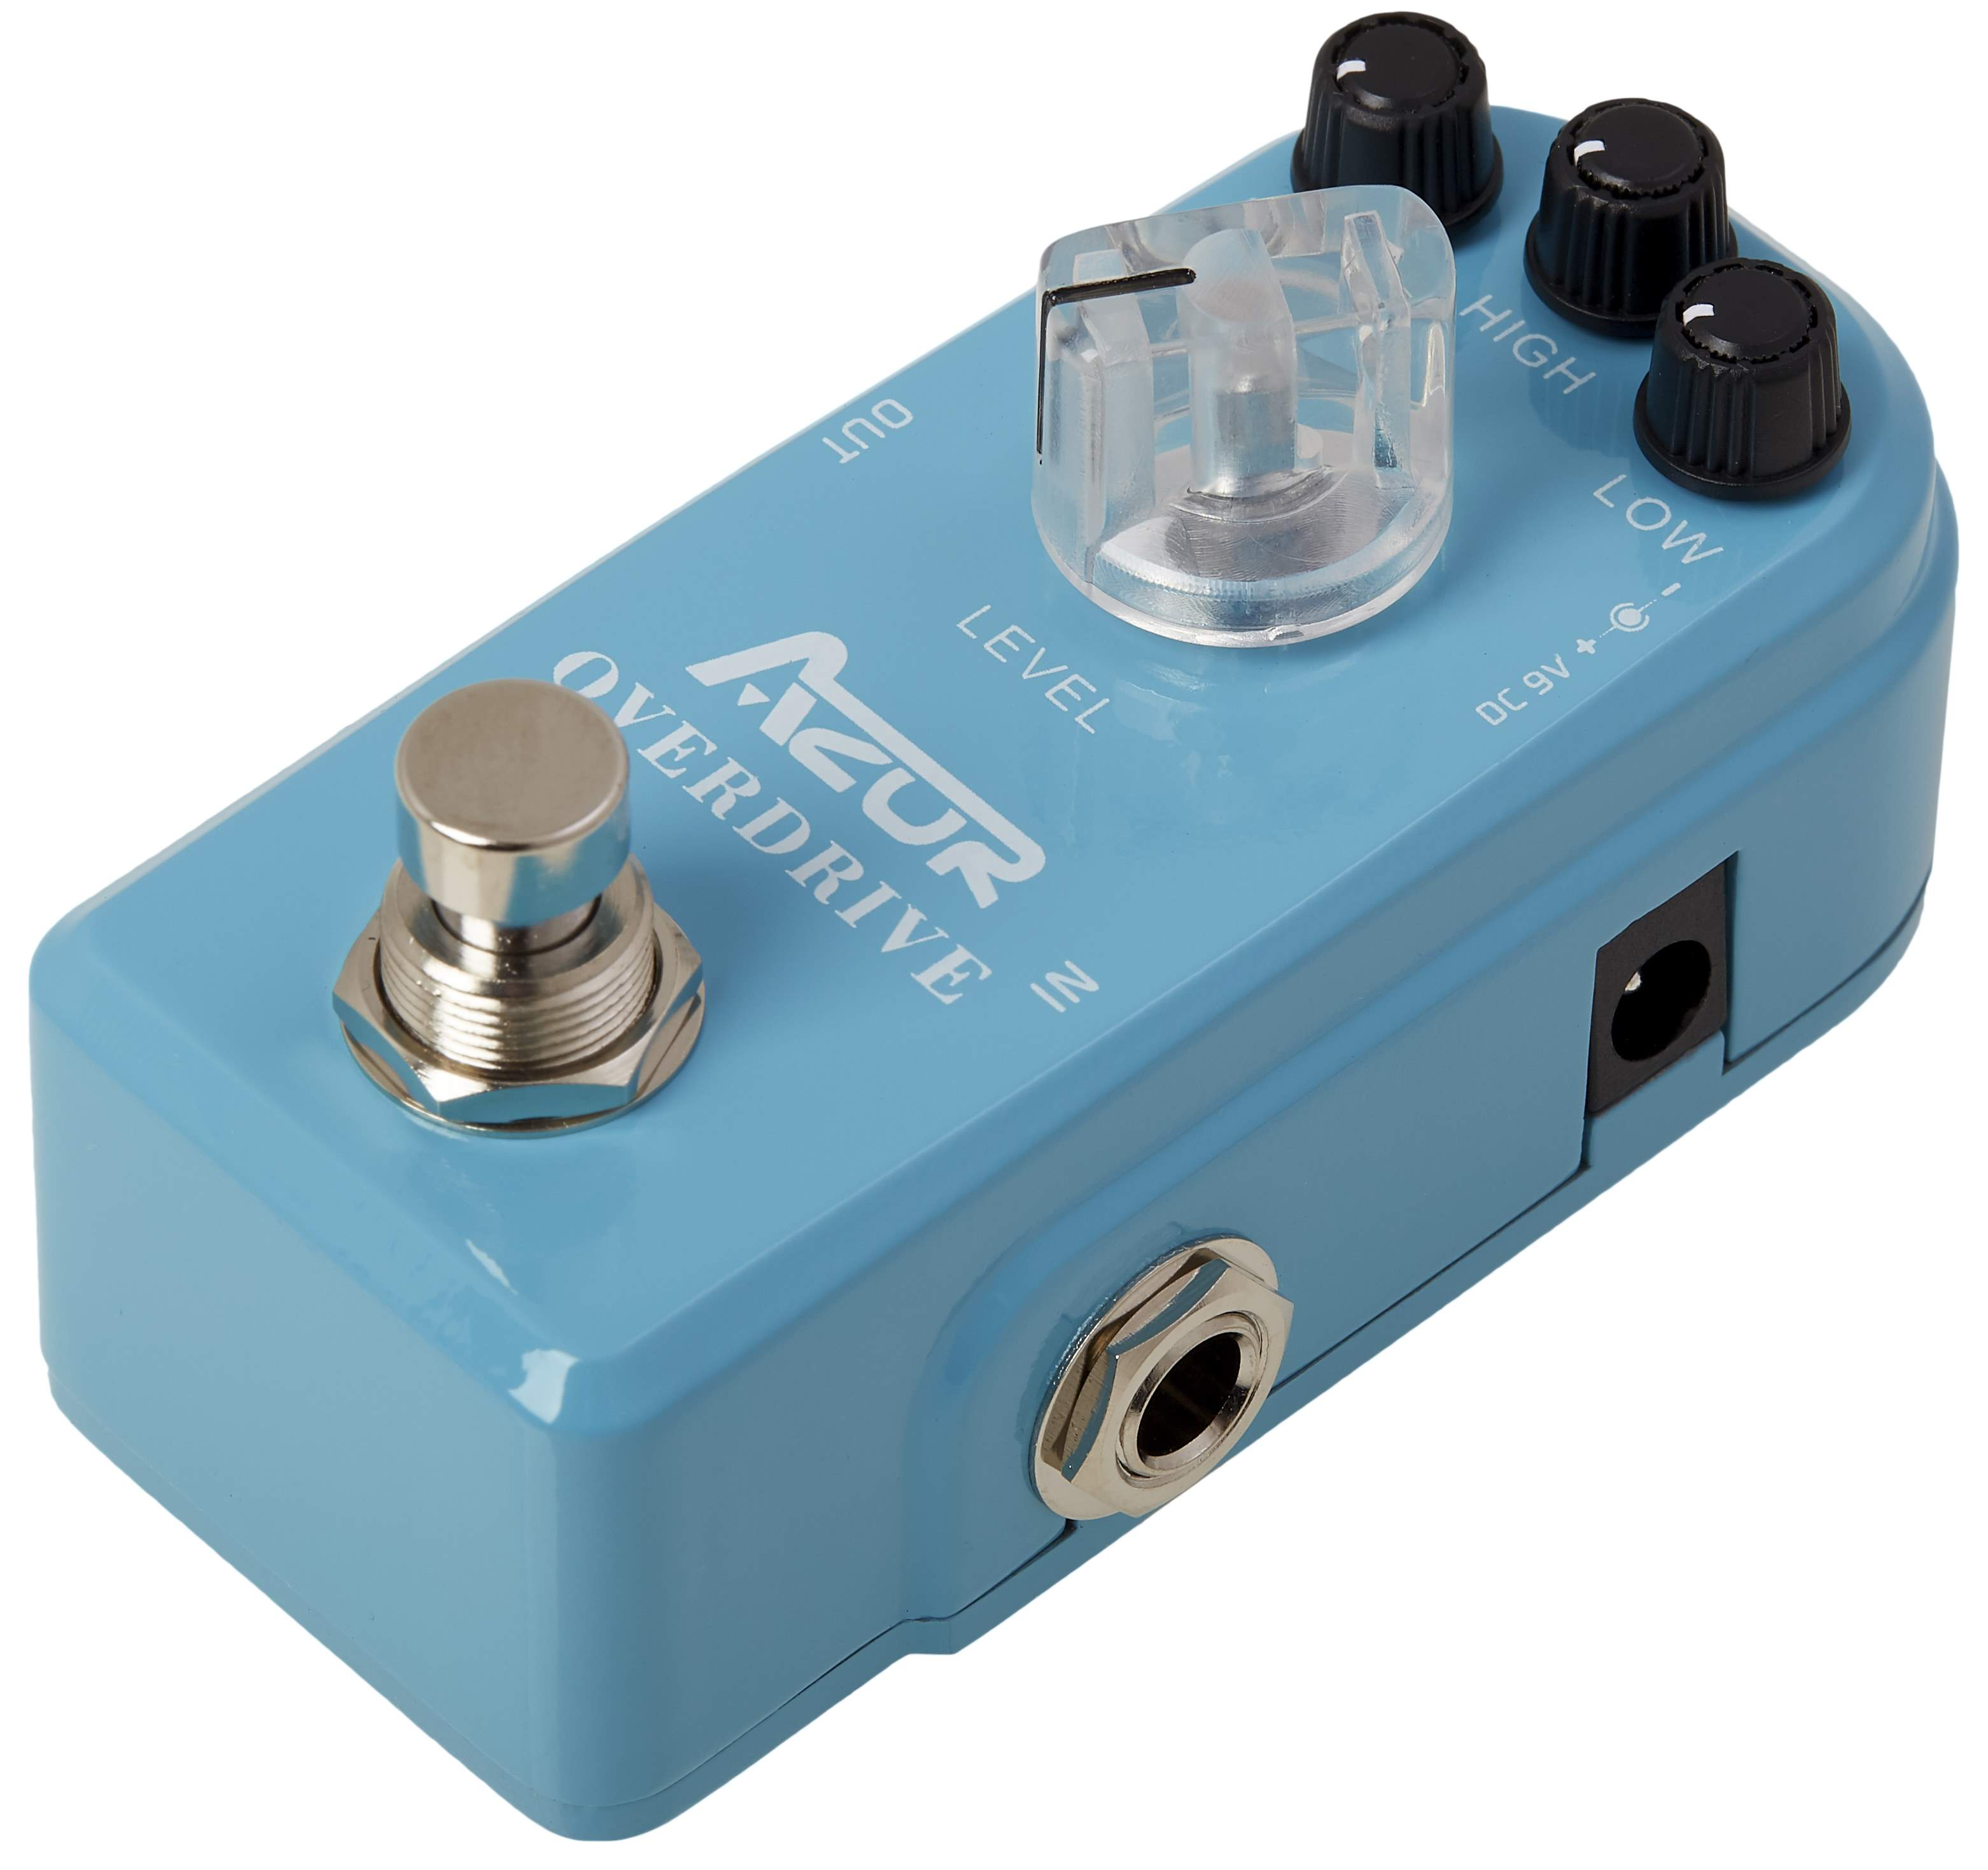 CALINE AP-308 Overdrive